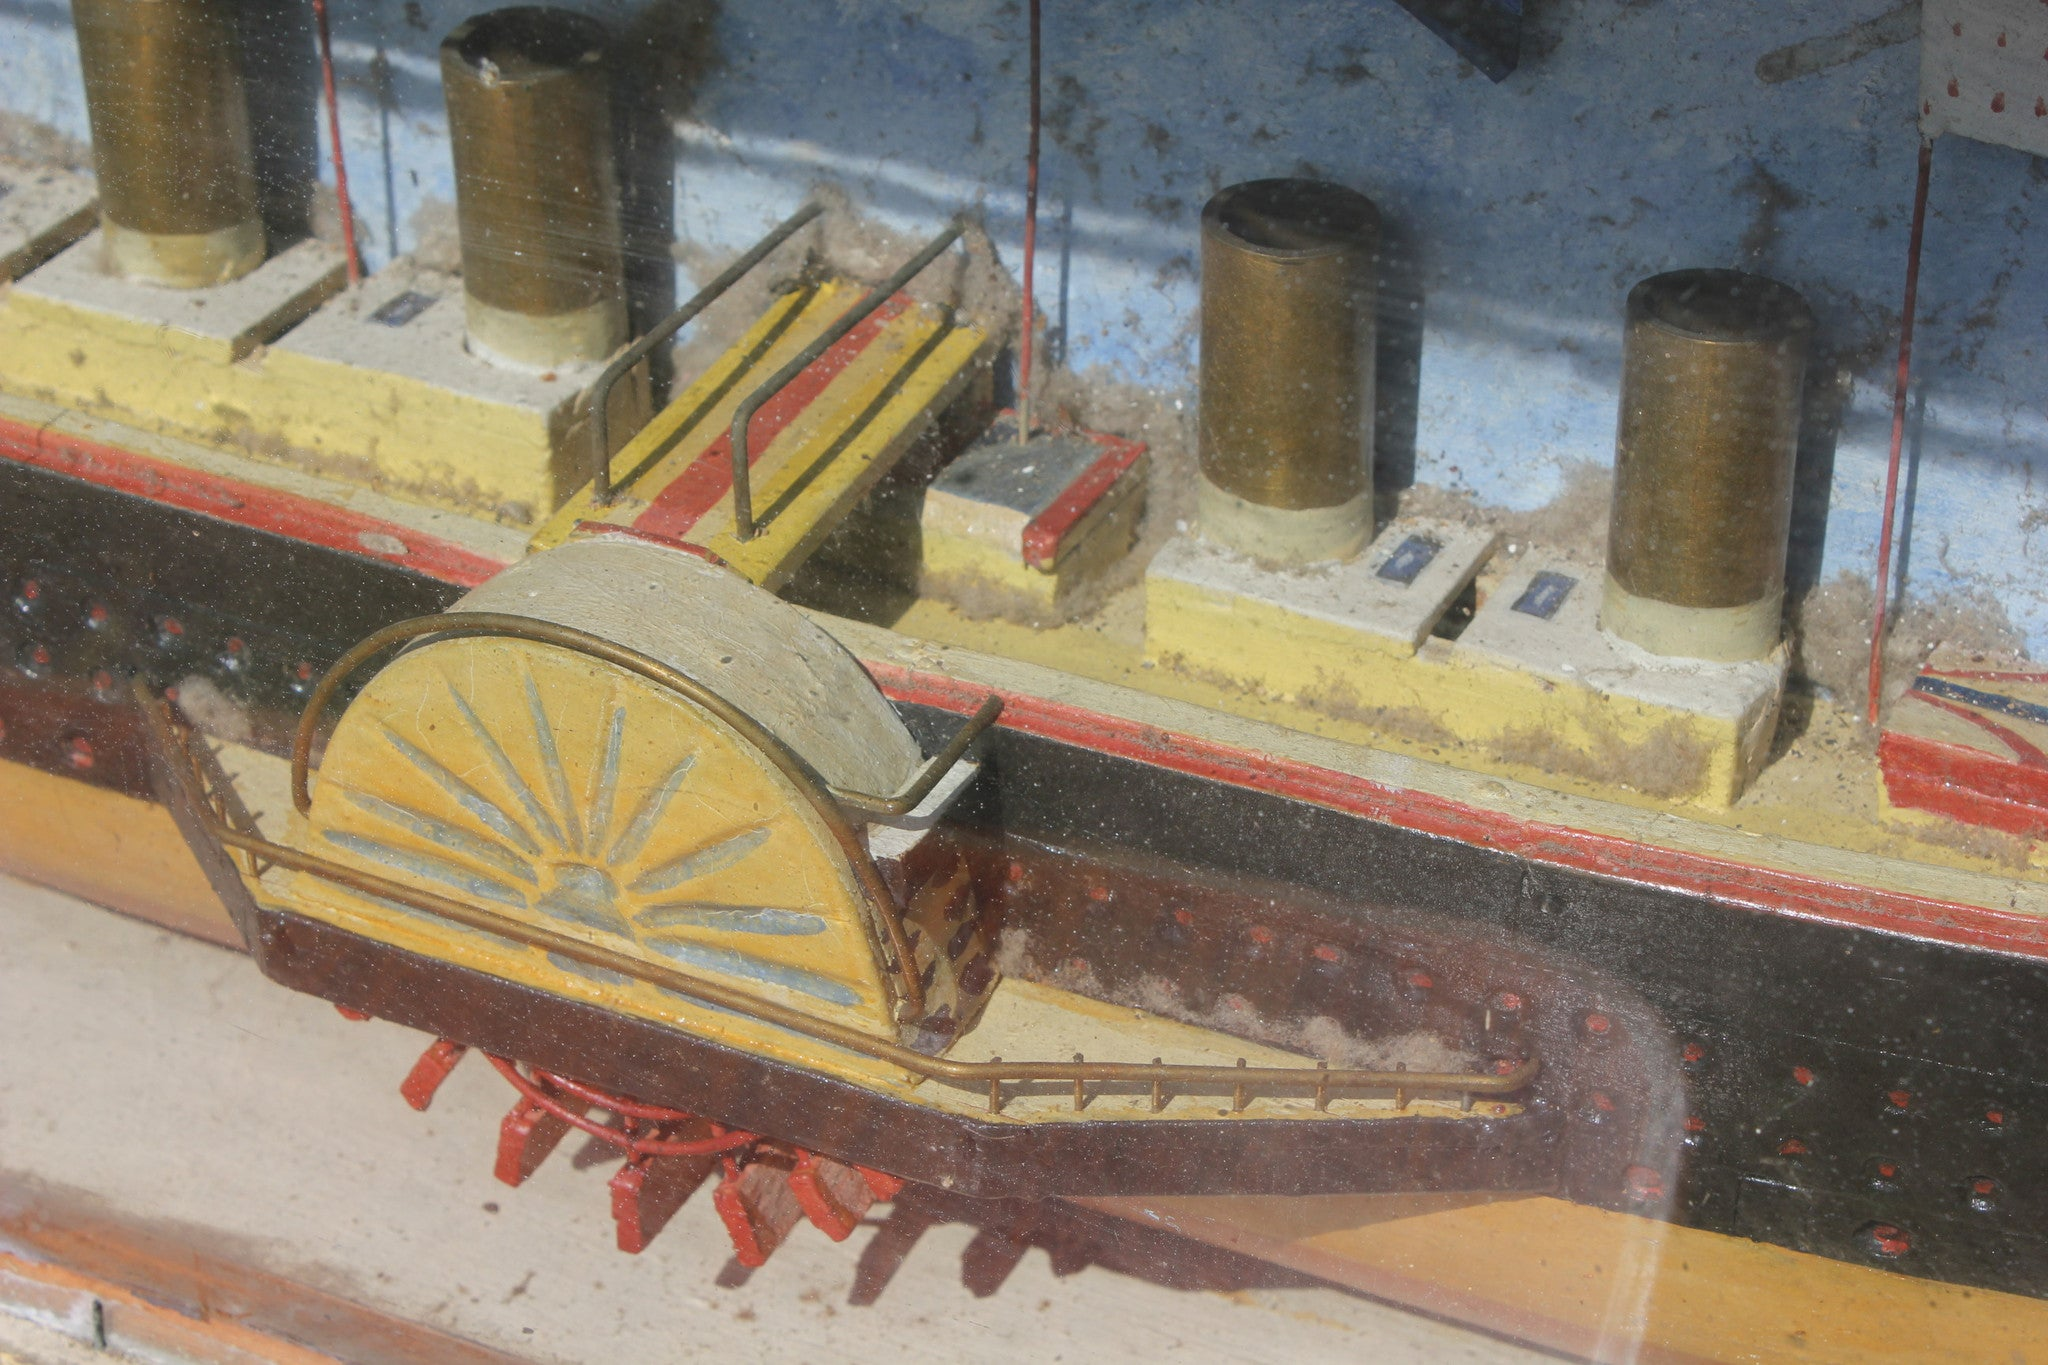 Isambard Kingdom Brunel. SS Great Eastern, Victorian half block model c-1859